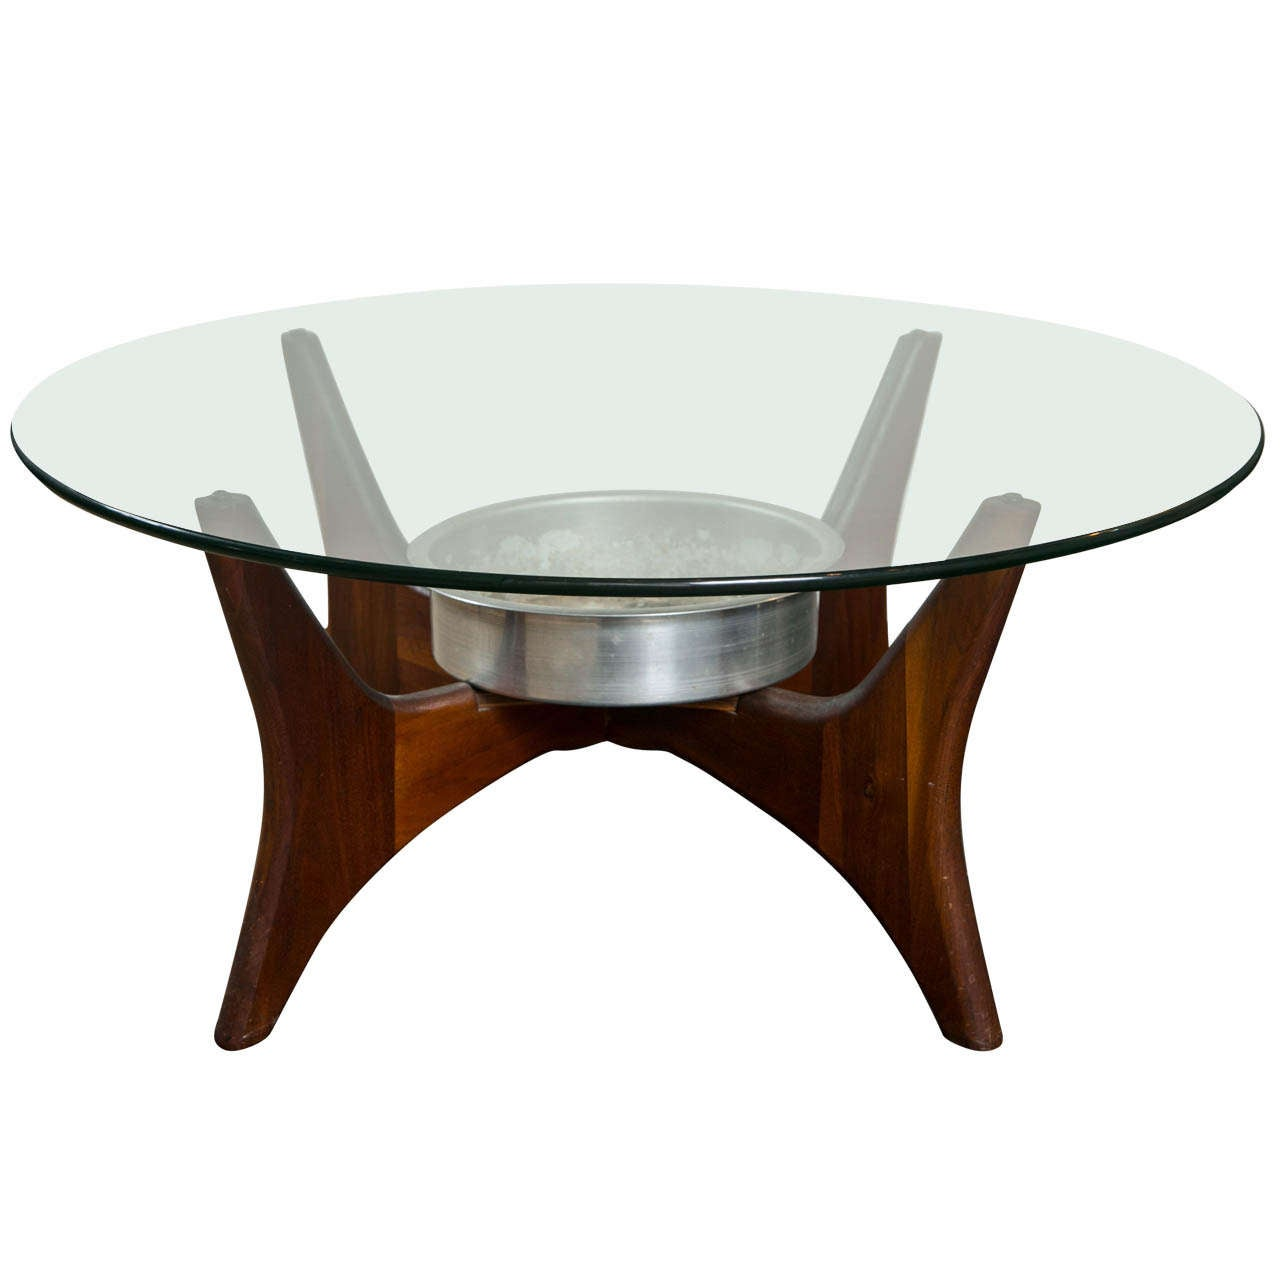 Mid century coffee table signed round adrian pearsall at 1stdibs mid century coffee table signed round adrian pearsall 1 geotapseo Choice Image